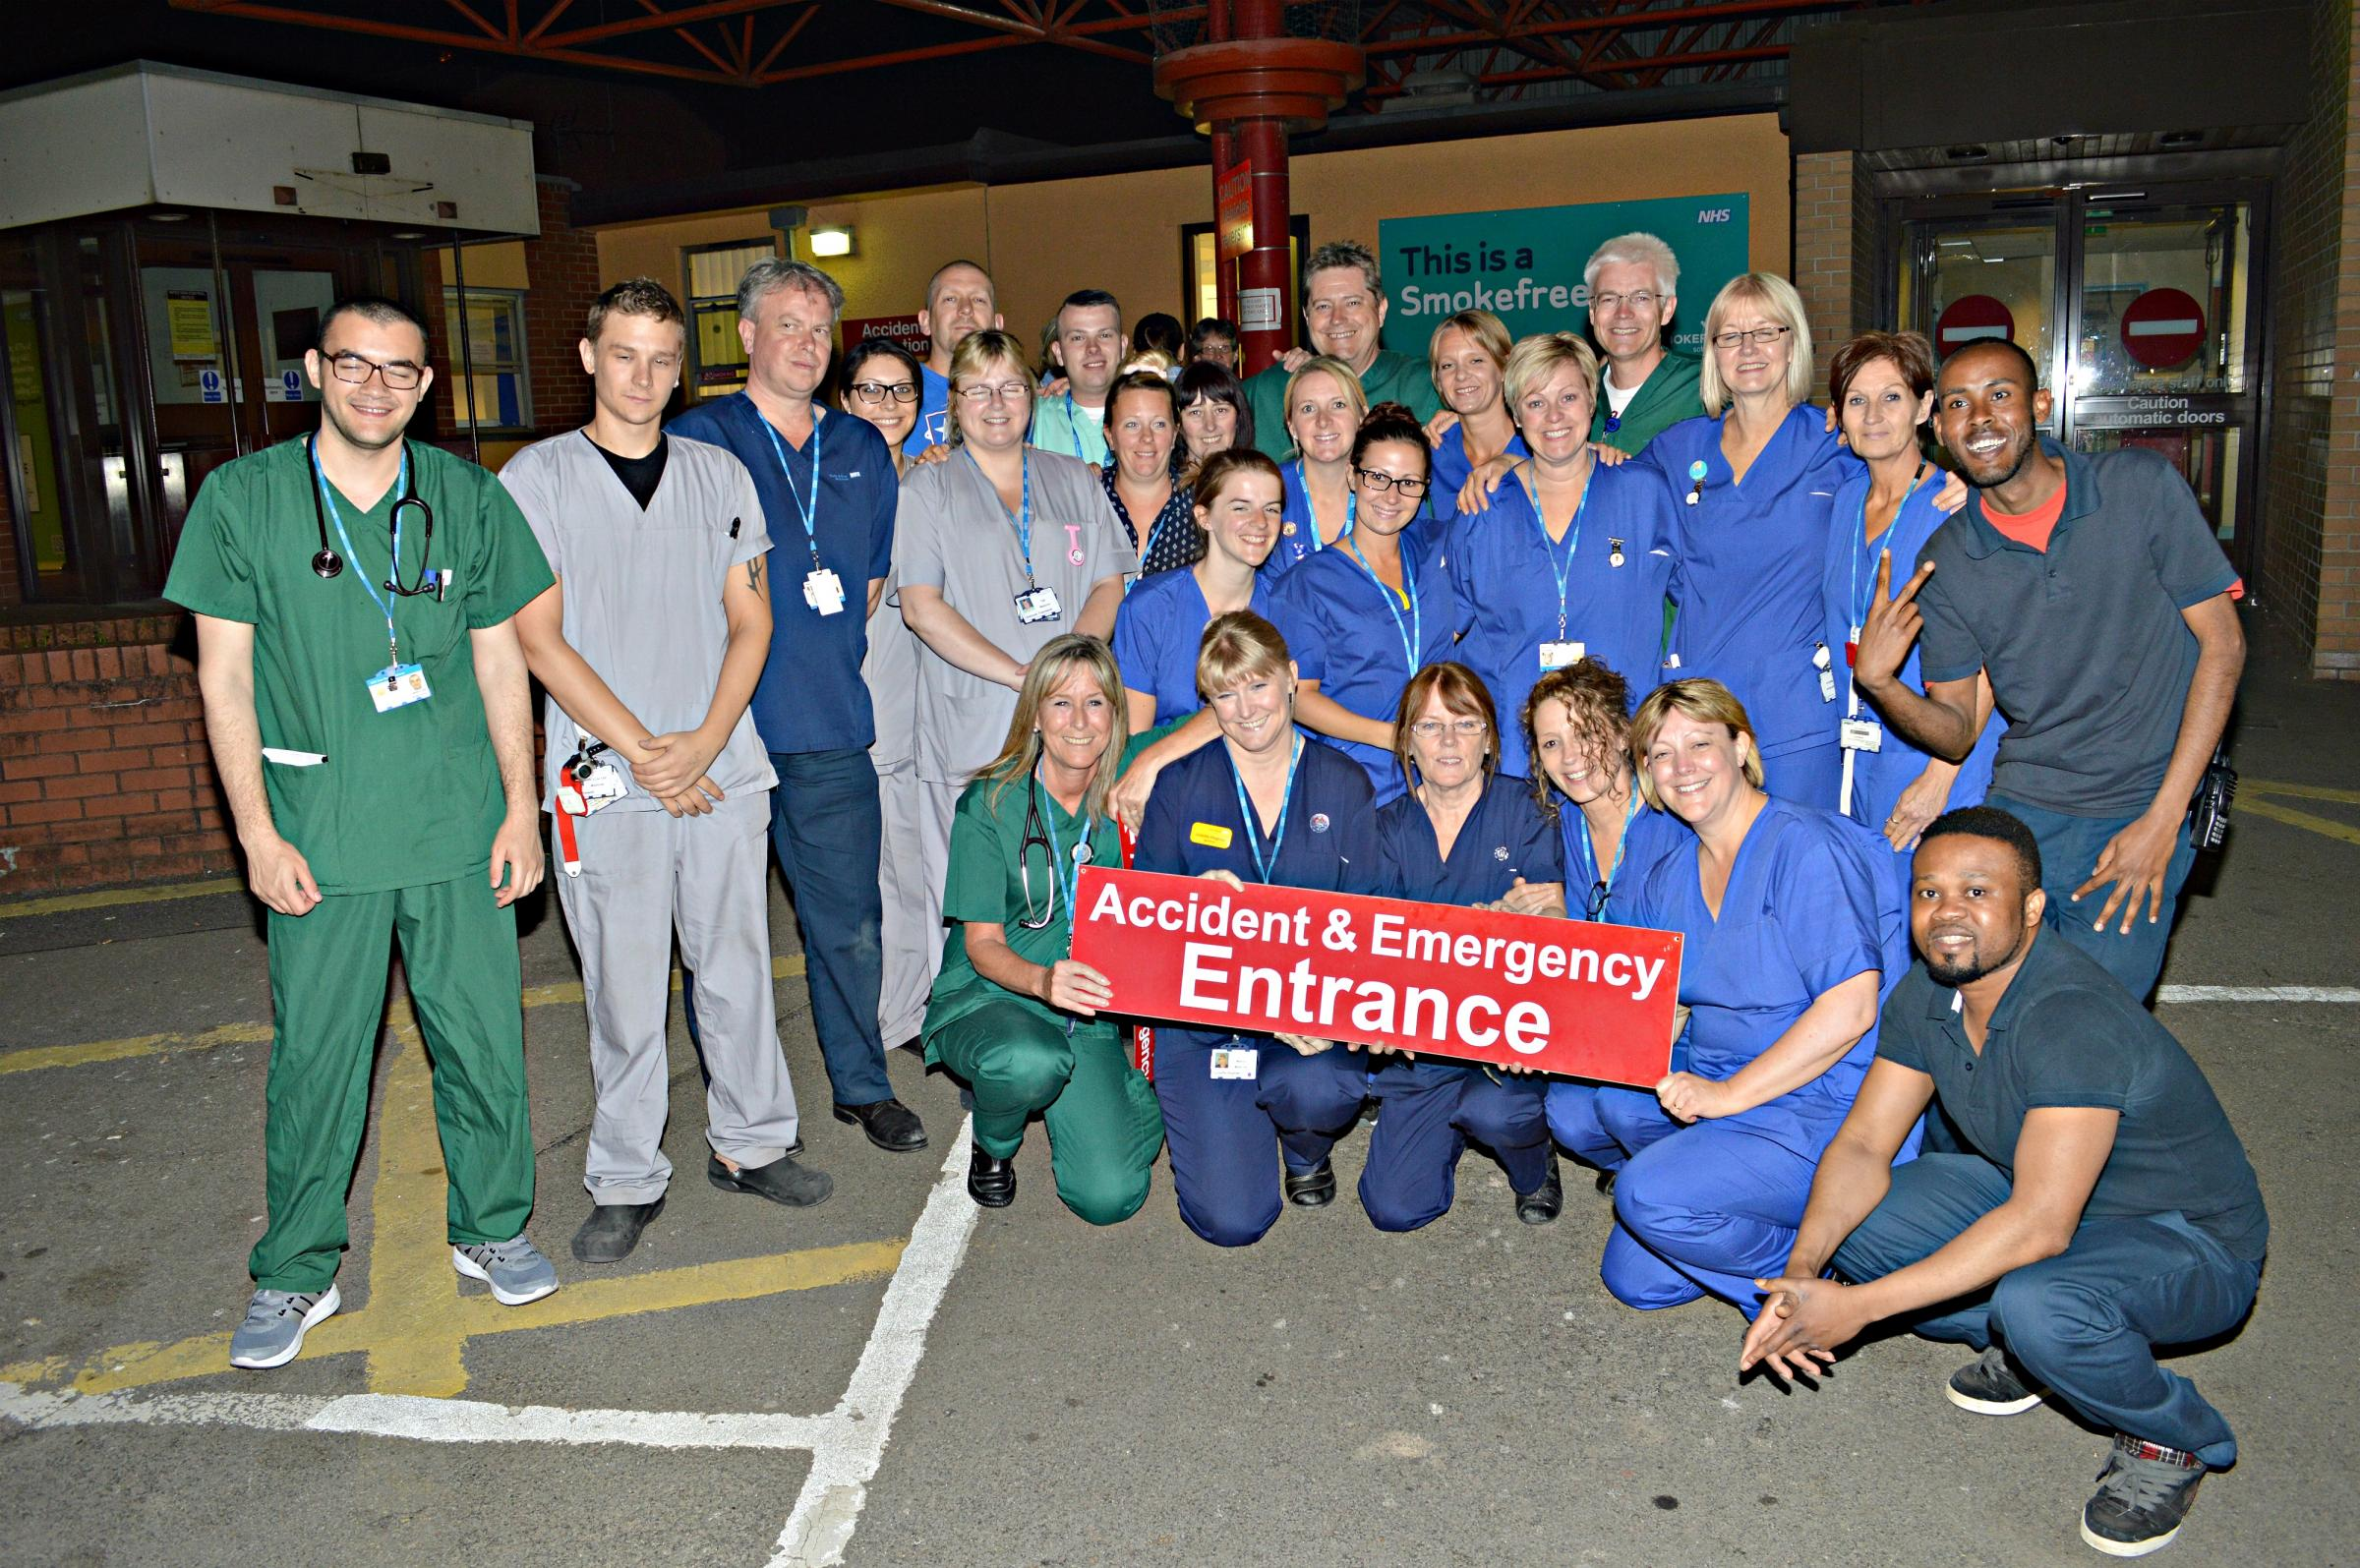 One door closes as another opens - Frenchay A&E moves to Southmead